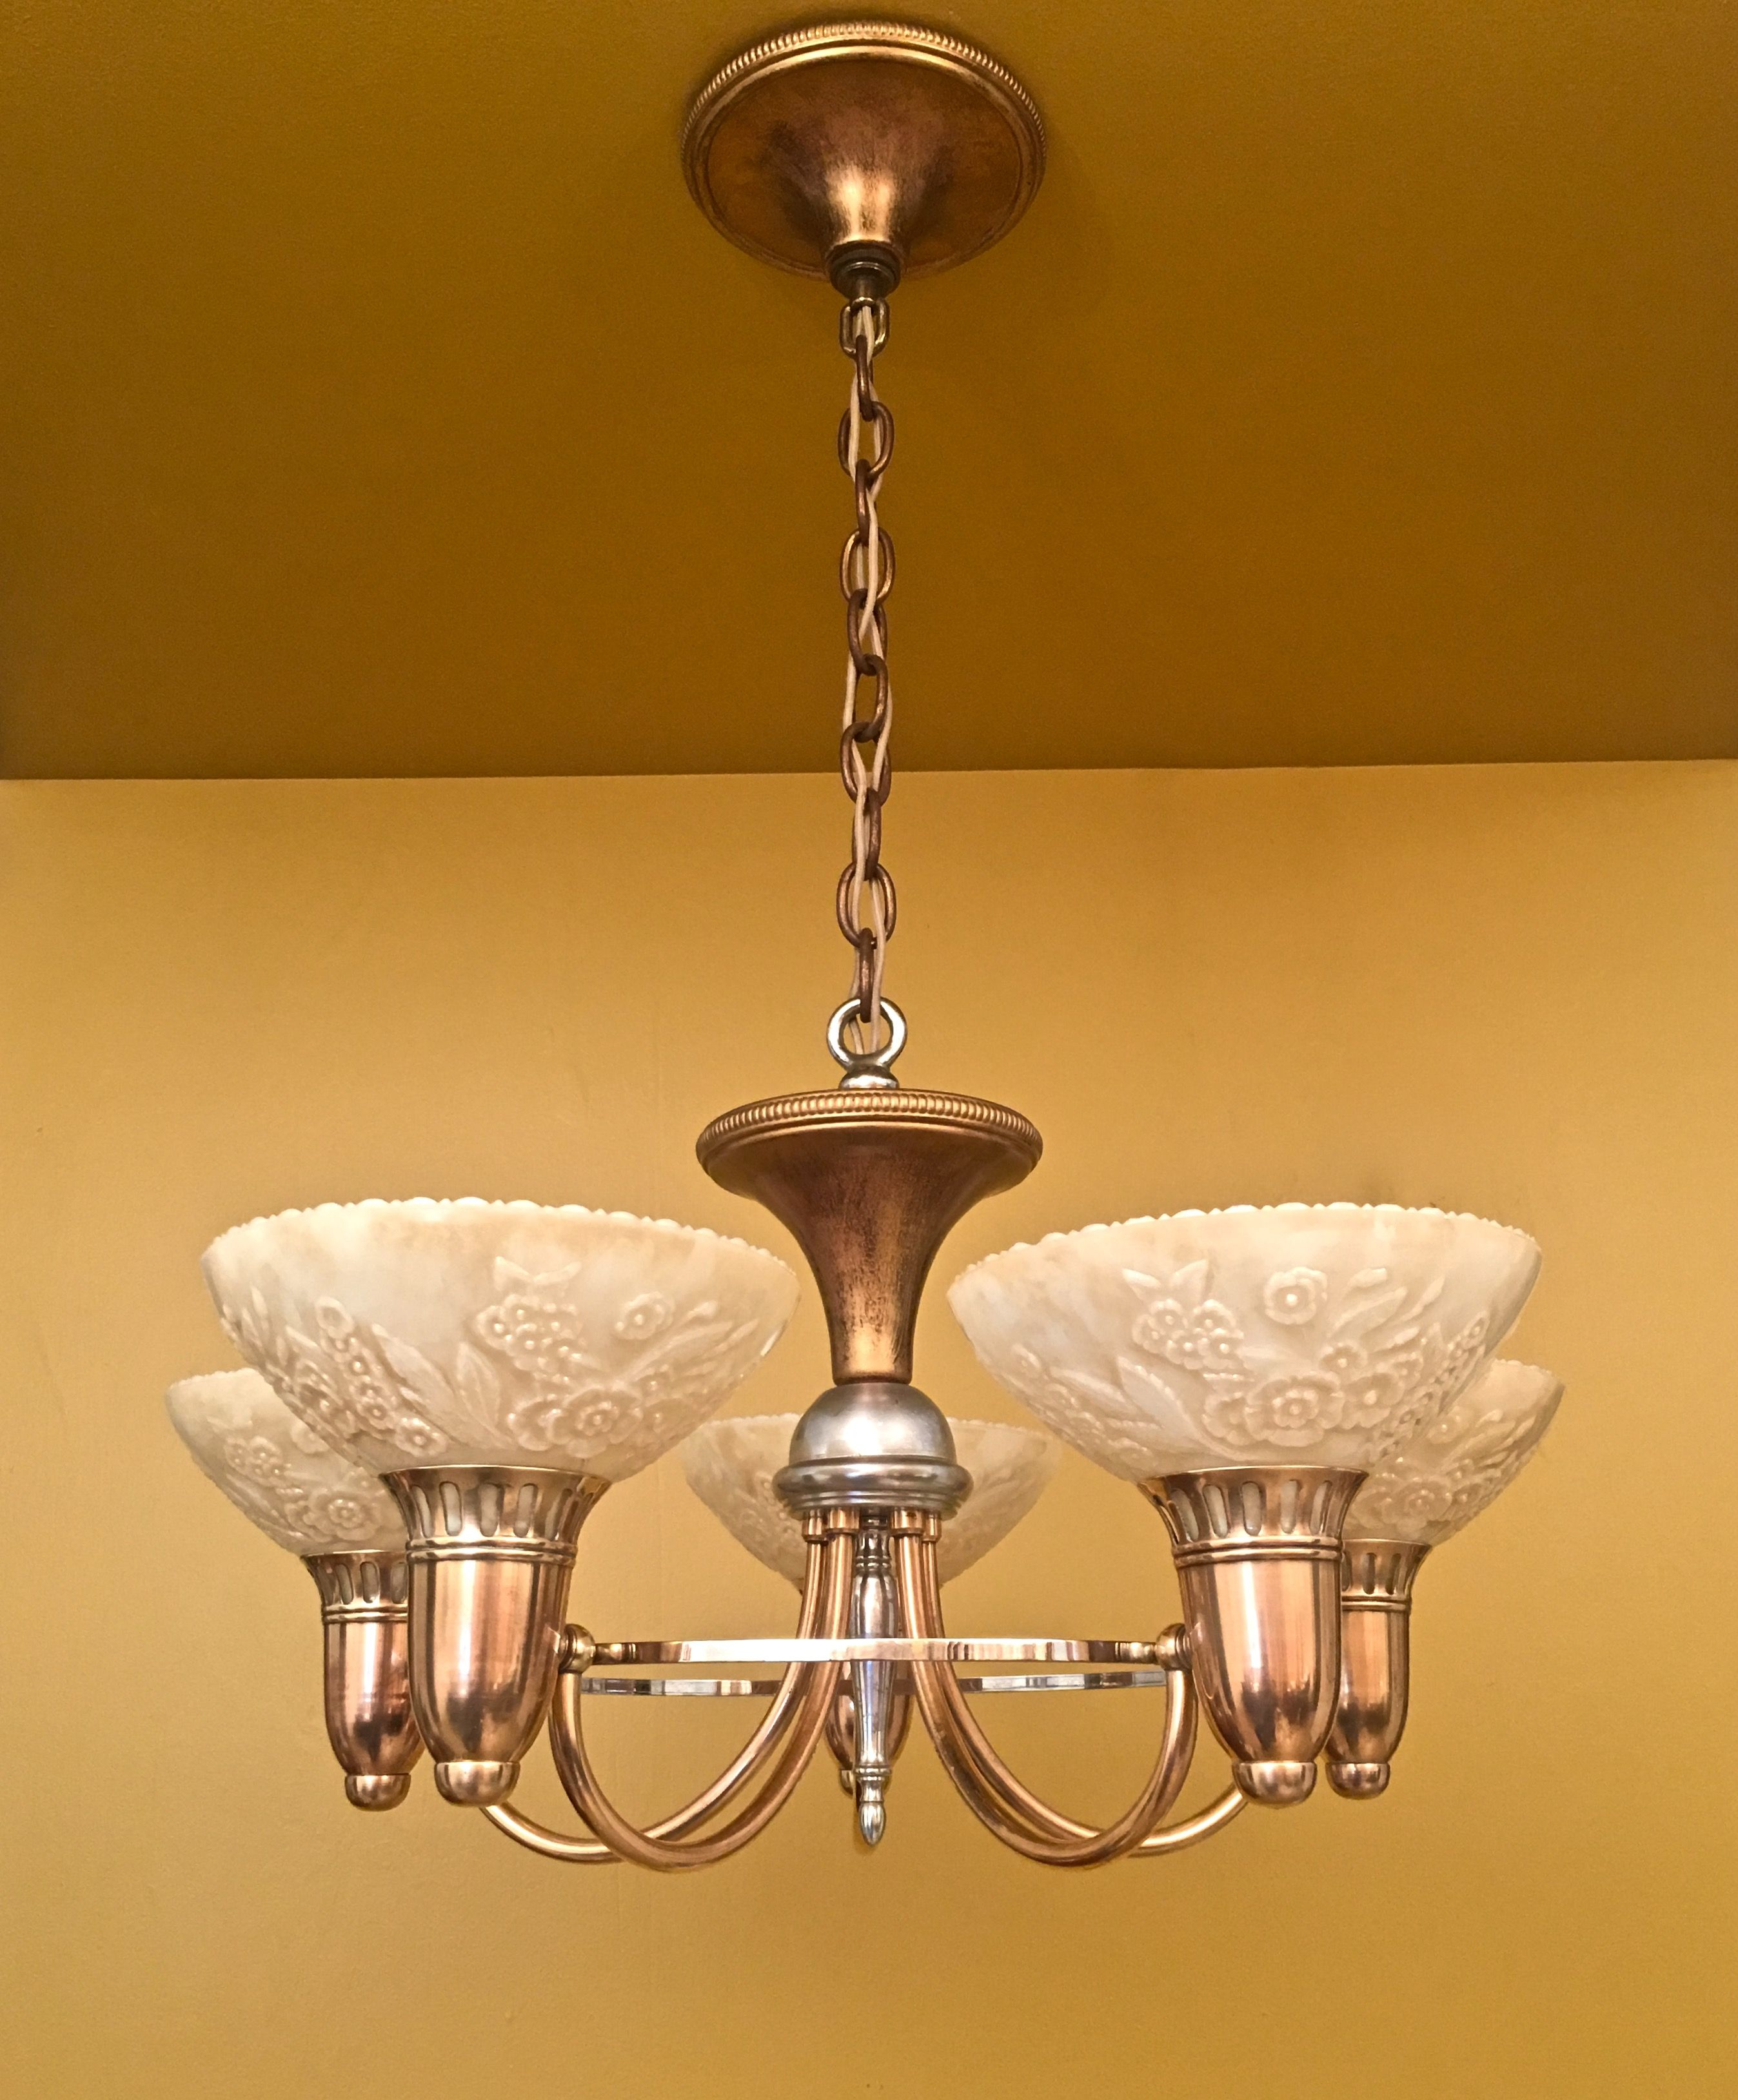 1930s Chandelier By Gill Glass Antique Lighting Vintage Lighting Art Deco Home